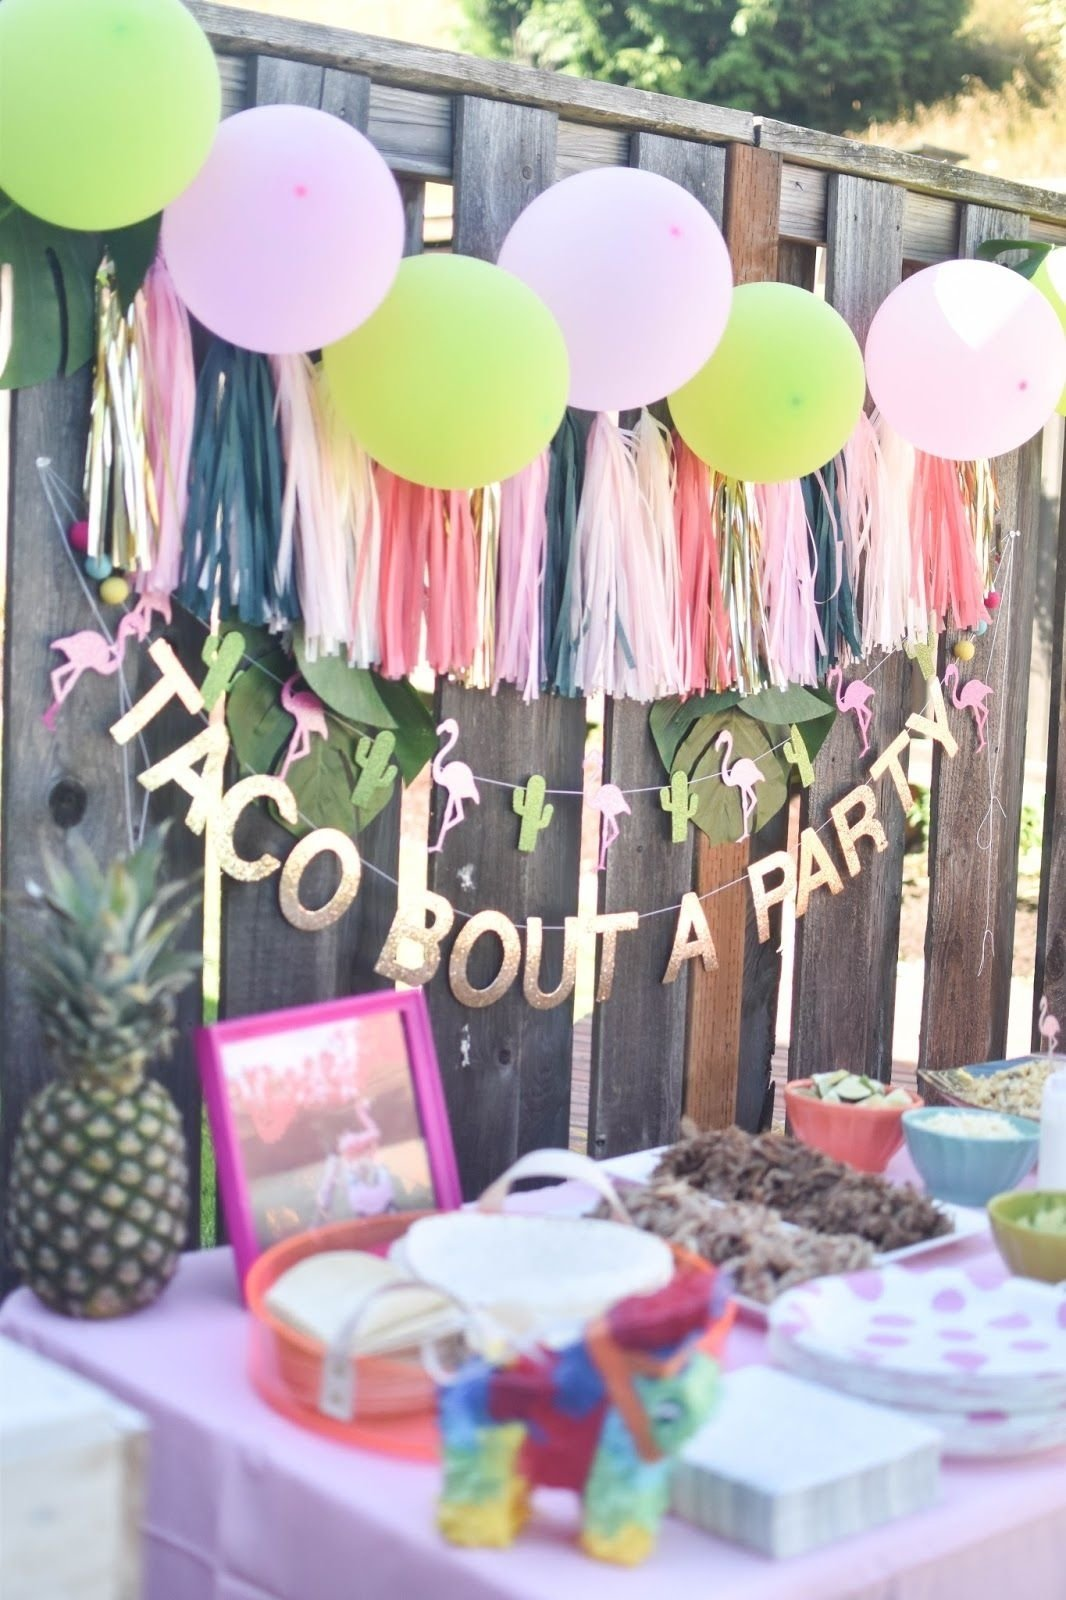 10 Pretty Birthday Party Ideas For 15 Yr Old Girl a flamingesta a flamingle and a fiesta in one taco bout a party